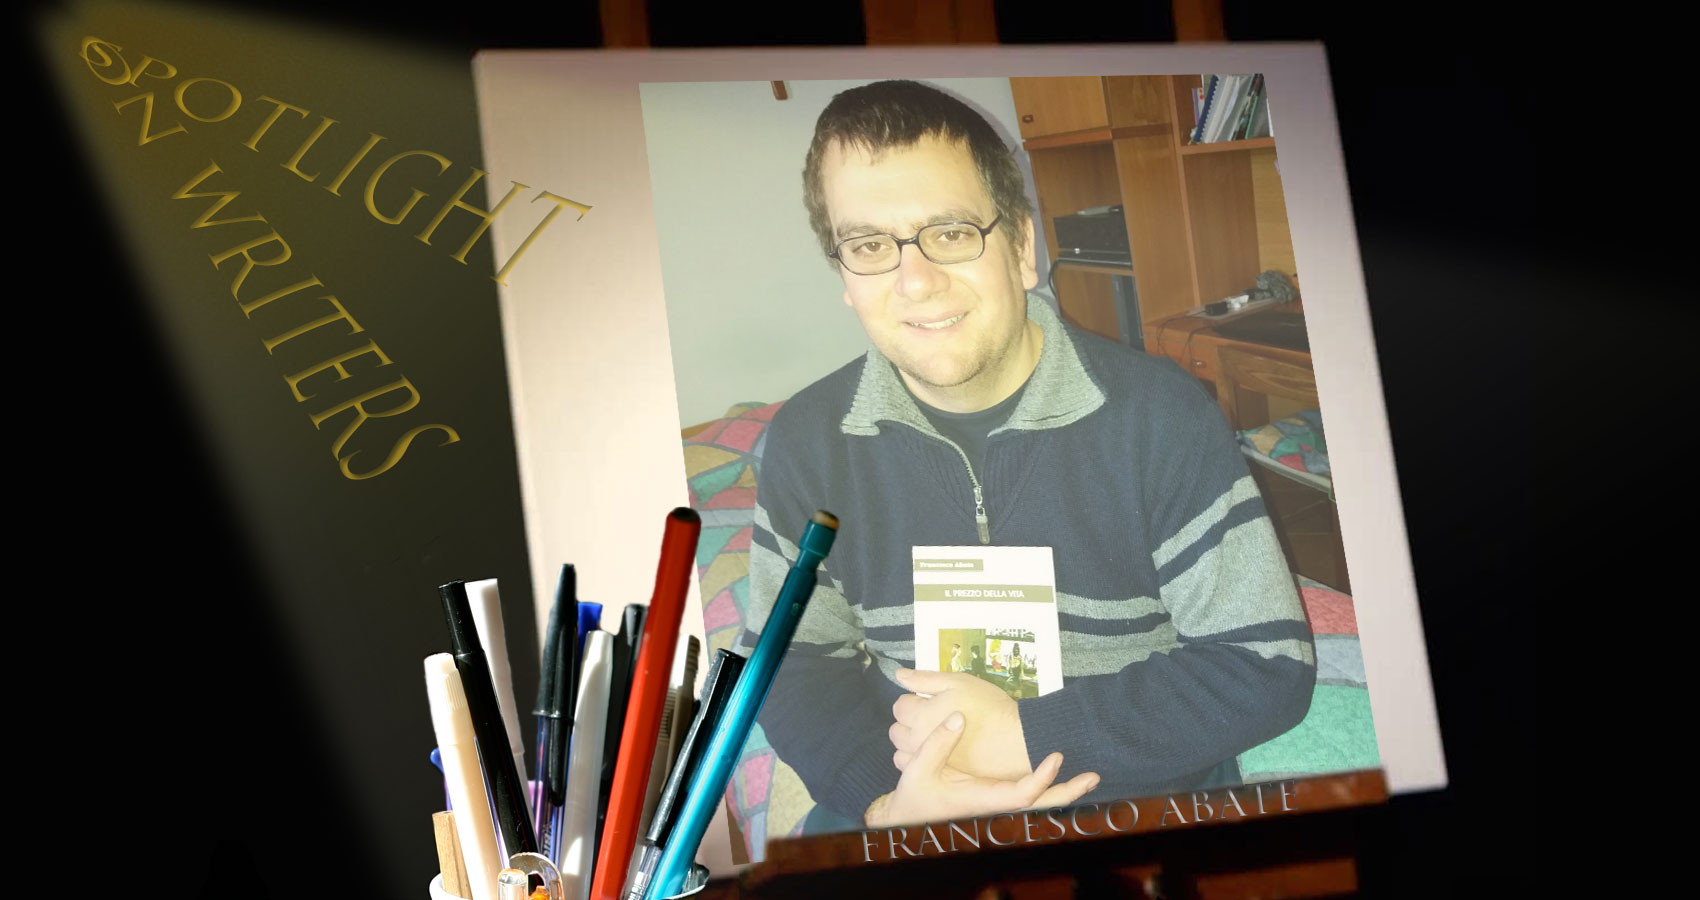 Spotlight On Writers - Francesco Abate at Spillwords.com